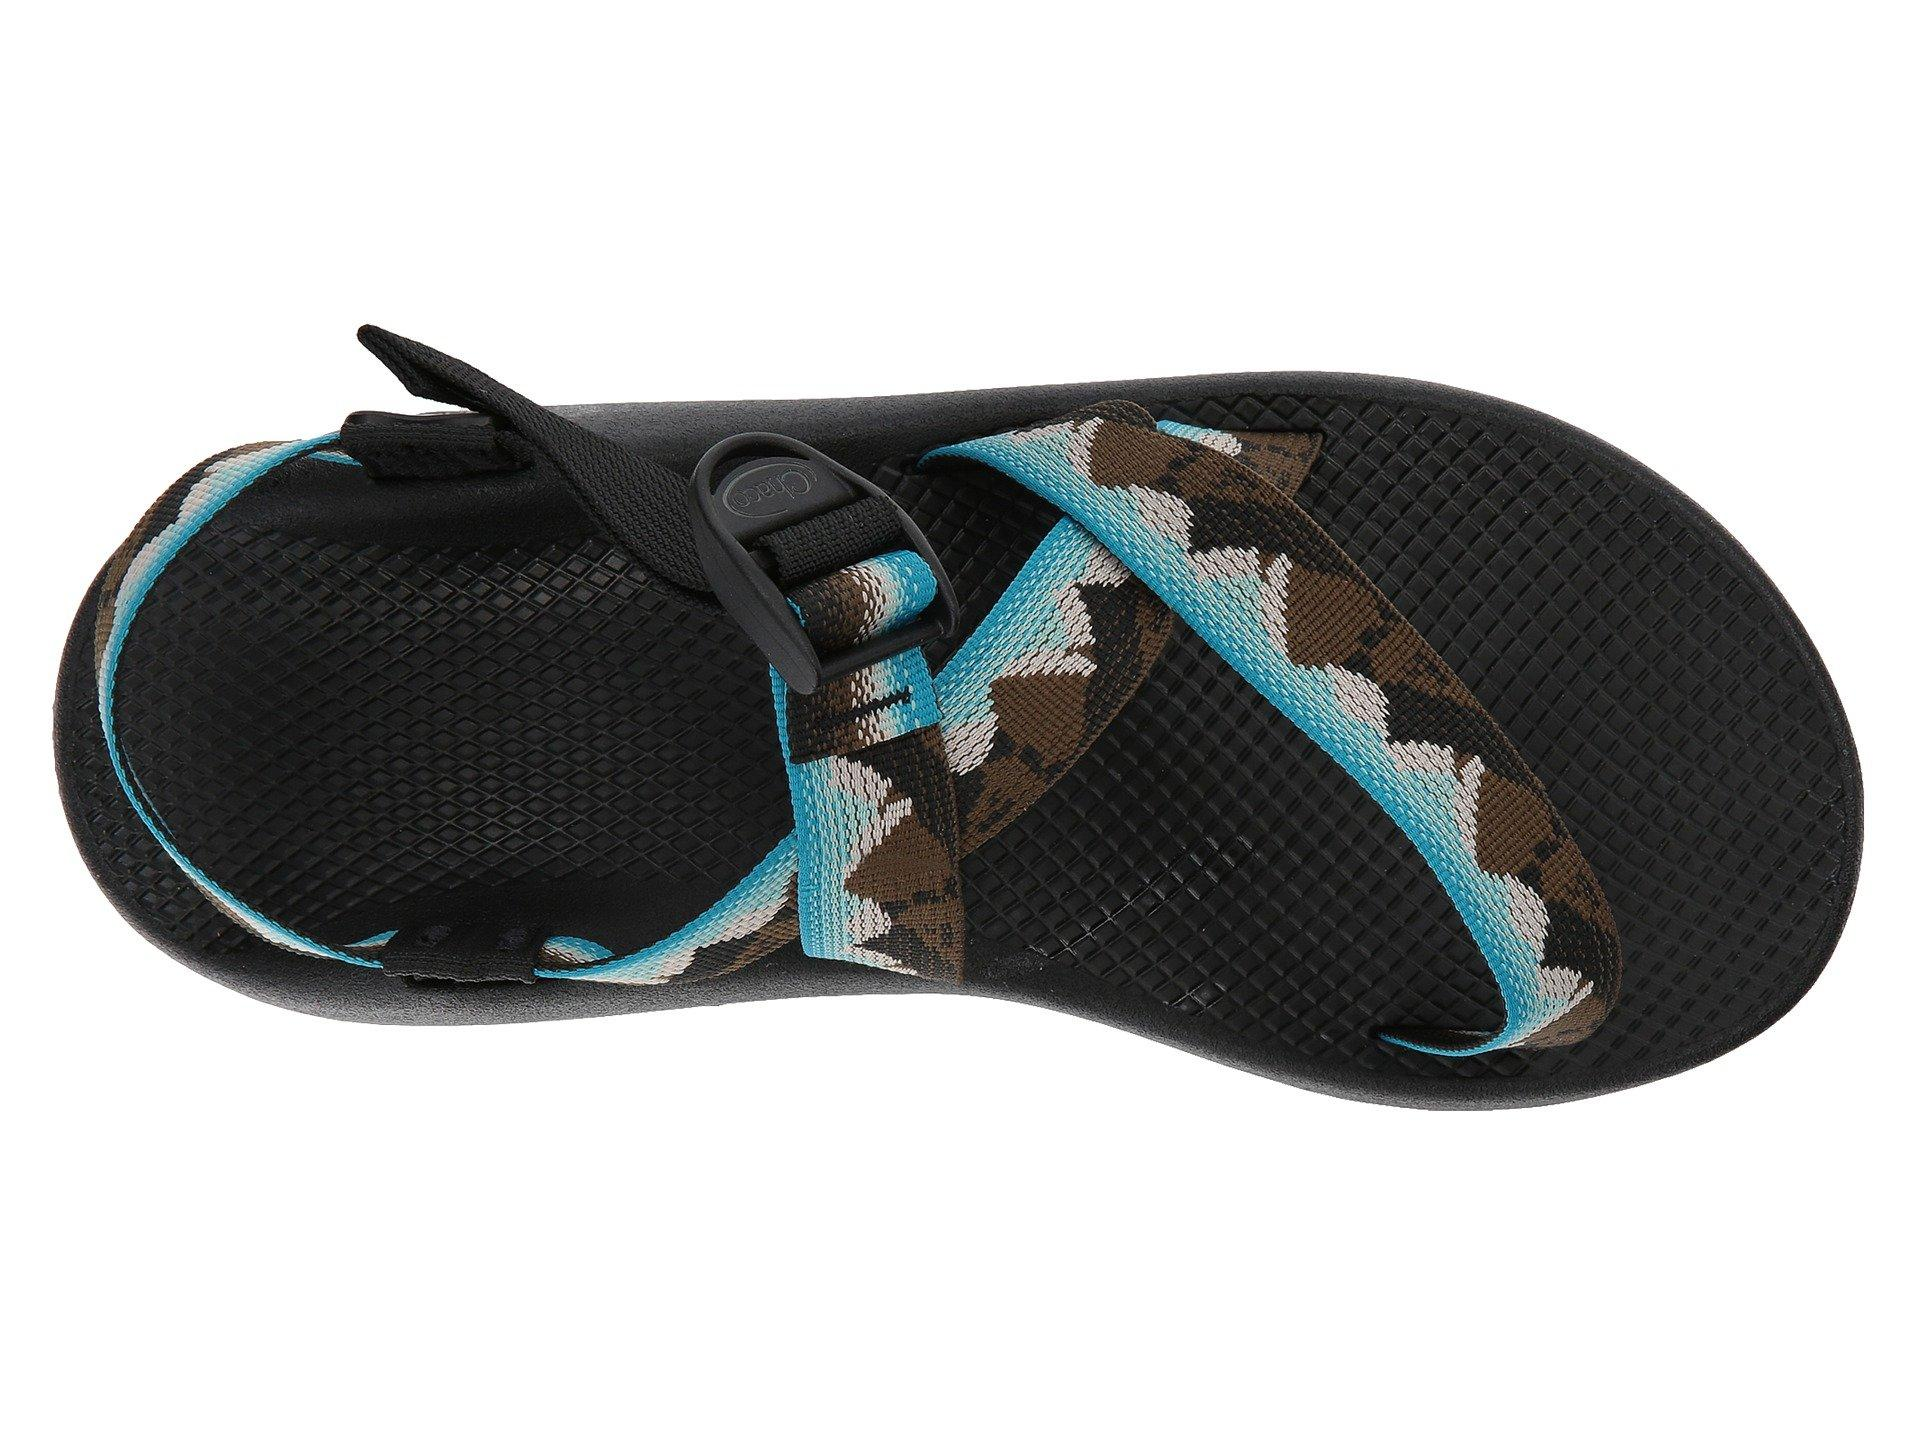 5c0b47c5c7e Lyst - Chaco Z 1® Npf Yosemite in Black for Men - Save 13%